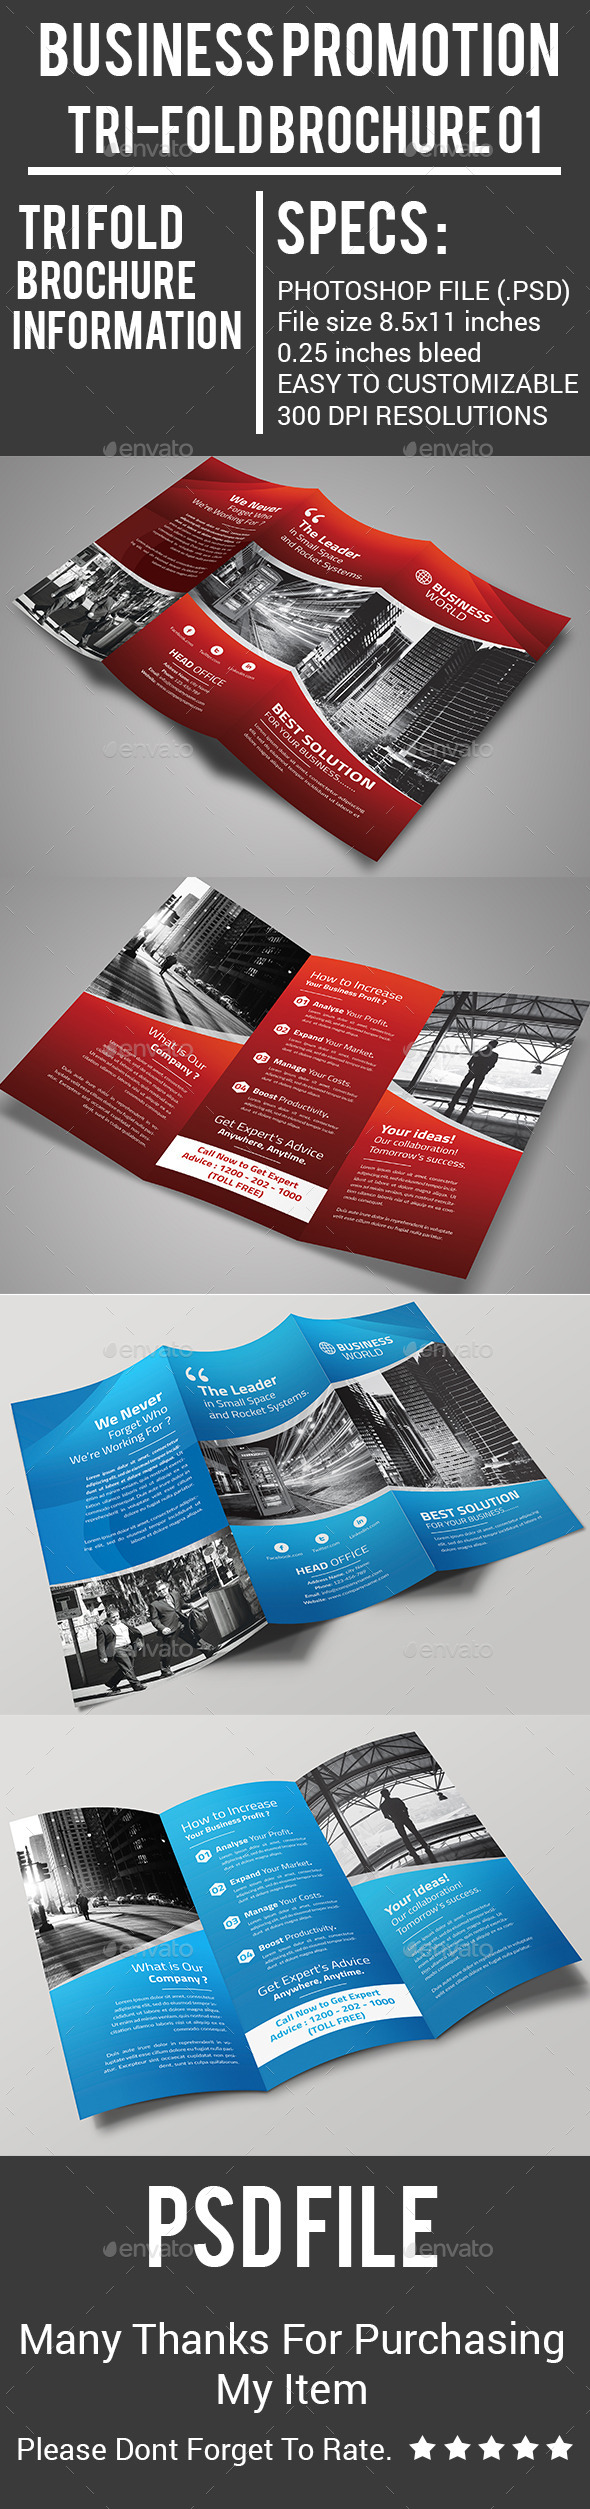 Business Promotion  Tri-Fold Brochure 01 - Corporate Brochures